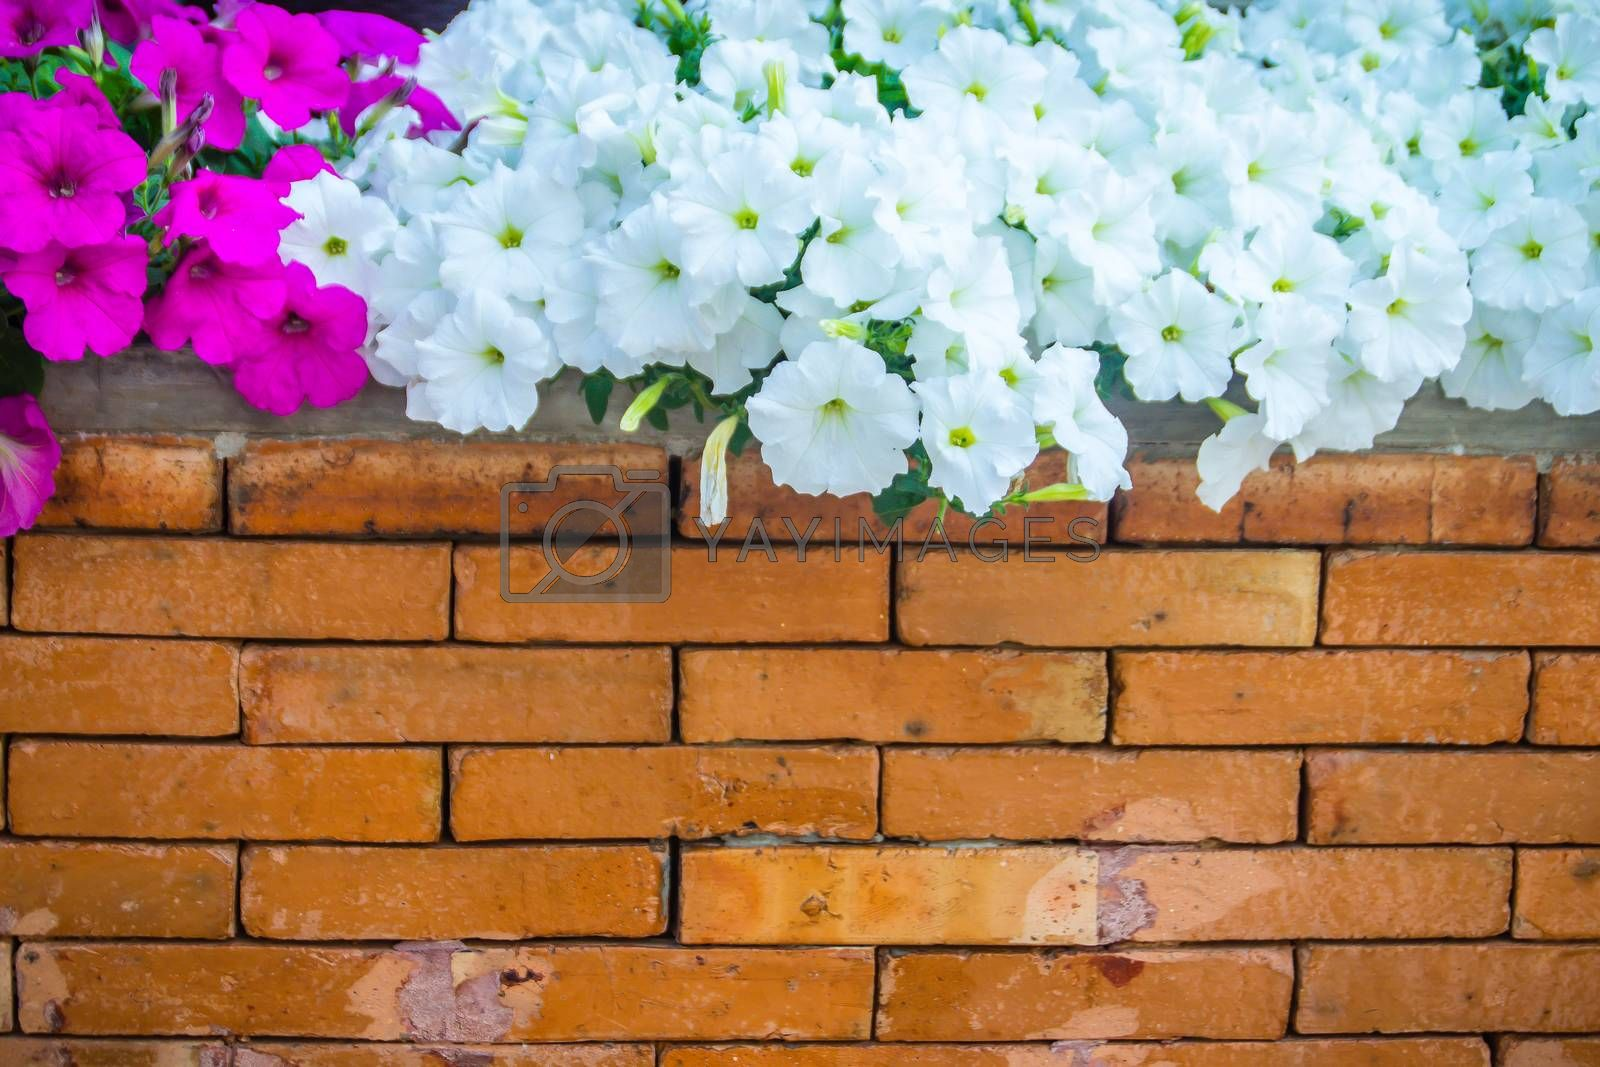 Beautiful pink and white petunia flowers with orange brick wall background and copy space for text. Petunias are one of our most popular summer bedding plants, flowering throughout summer.